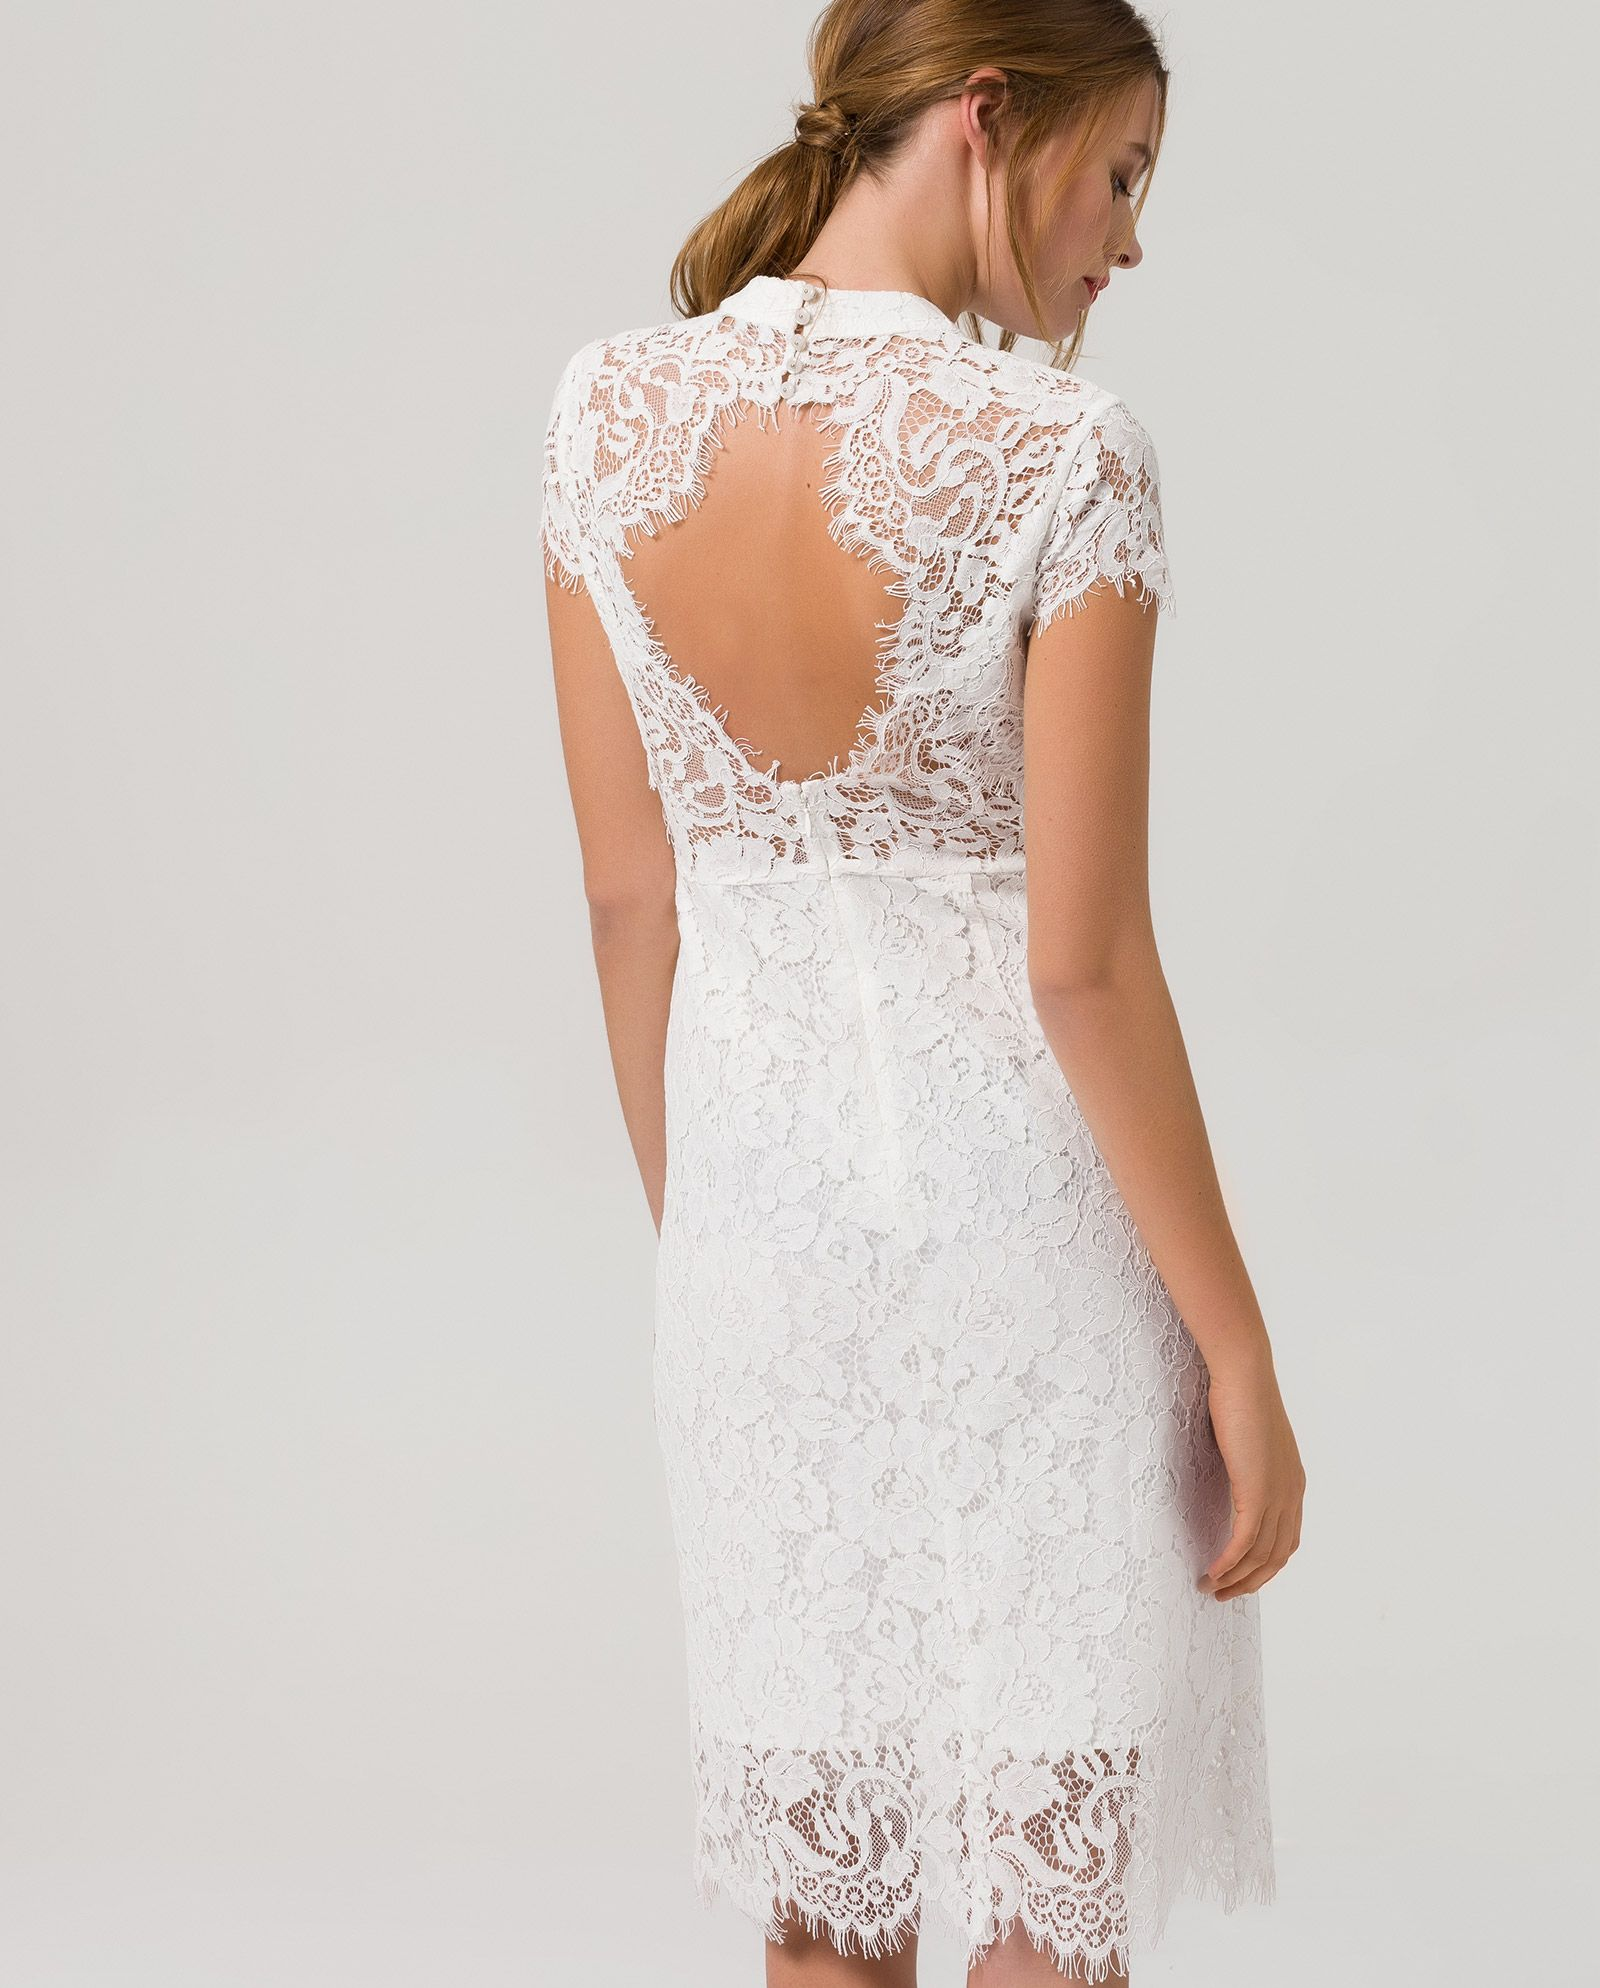 Cocktail Dress Lace - snow white - IVY & OAK | Dress | Pinterest ...